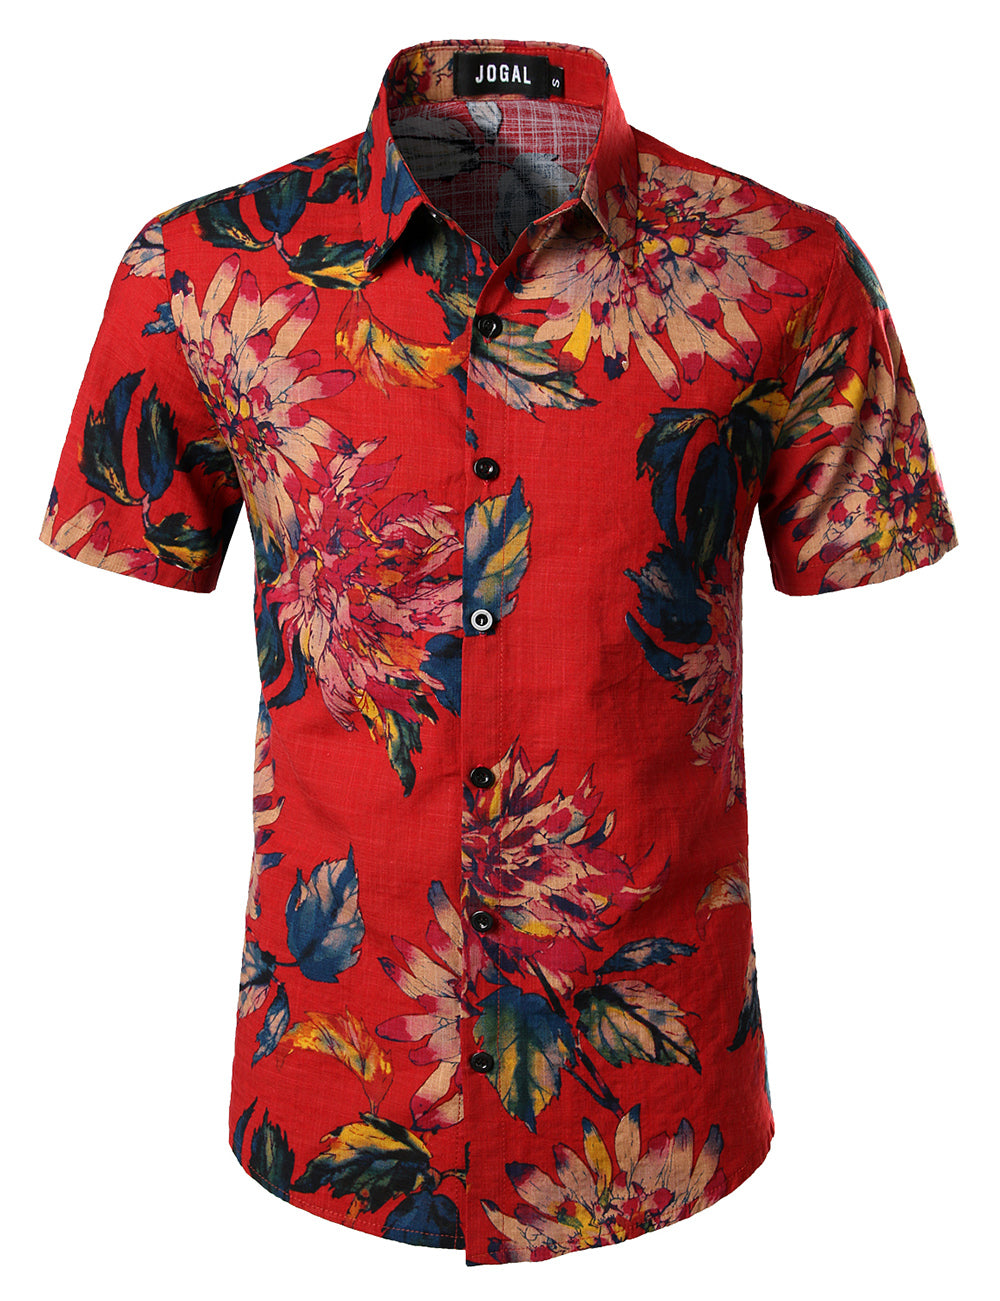 JOGAL Men's Flower Casual Button Down Short Sleeve Hawaiian Shirt(Red)